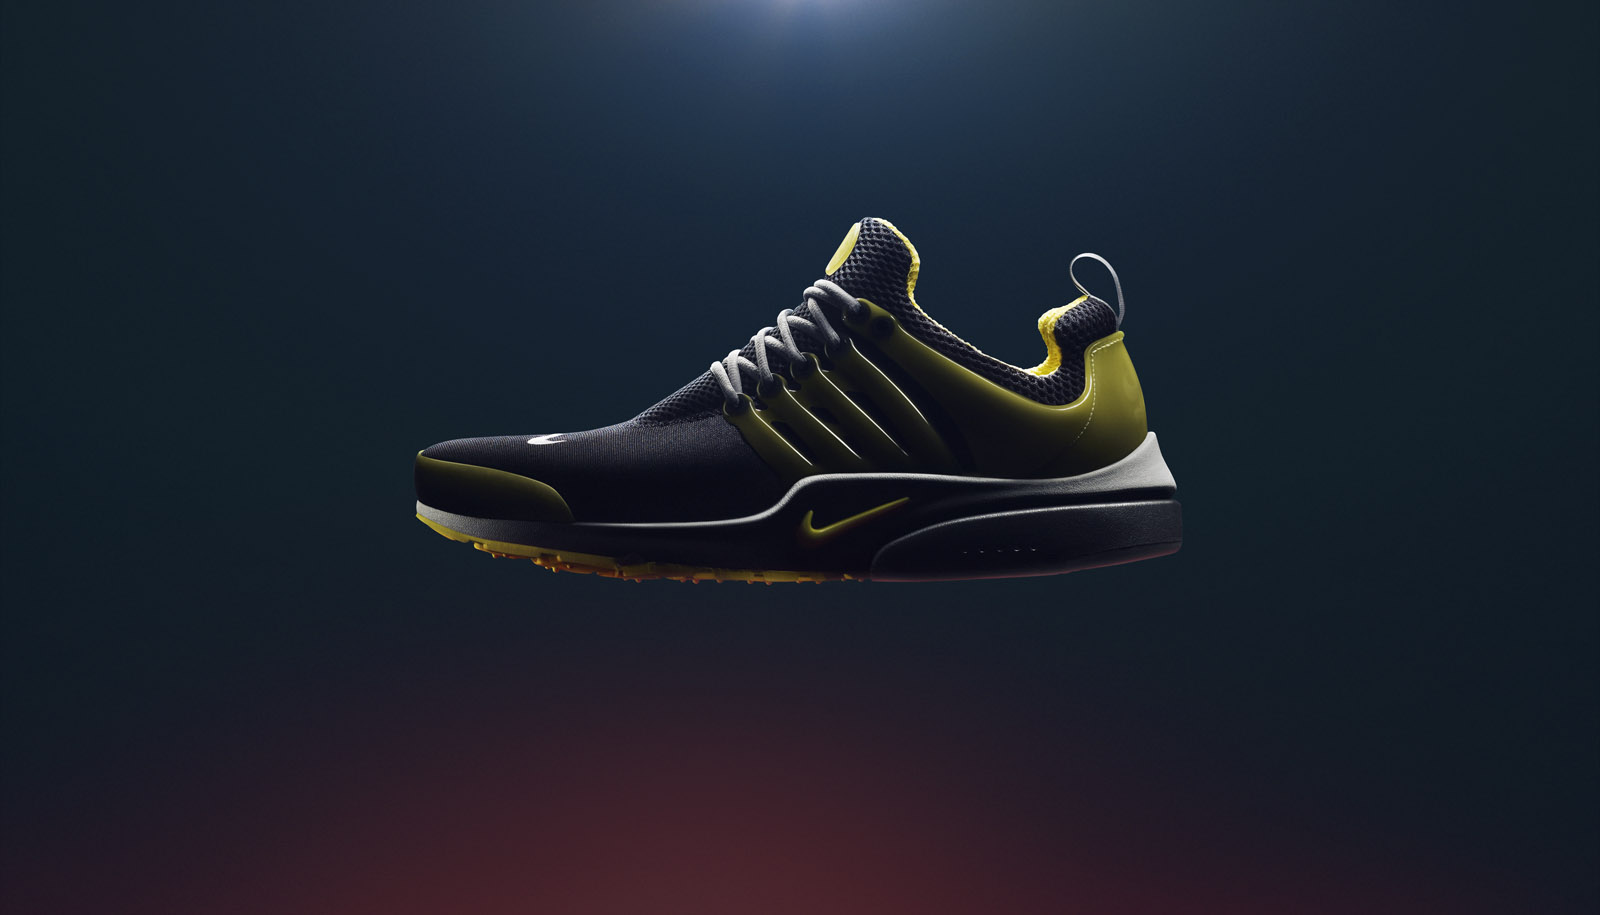 GOF_ORIGINAL_AIR_PRESTO_PROFILE_Hi-1.jpg